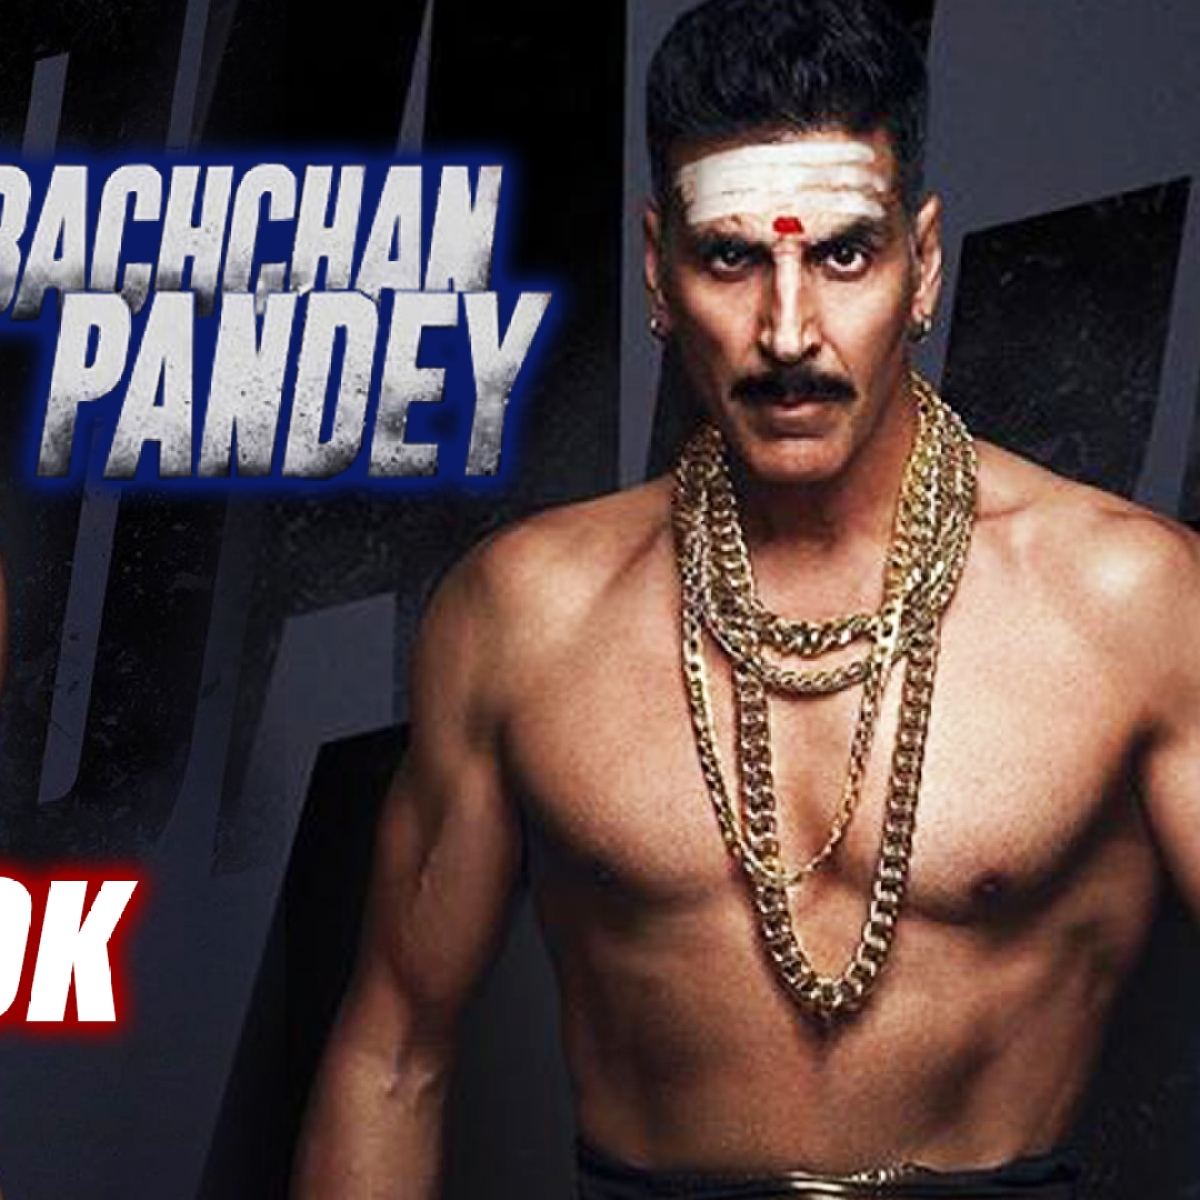 Bachchan's Pandey First Look Is Out, Akshay Kumar Dons Black Lungi And Gold Chain